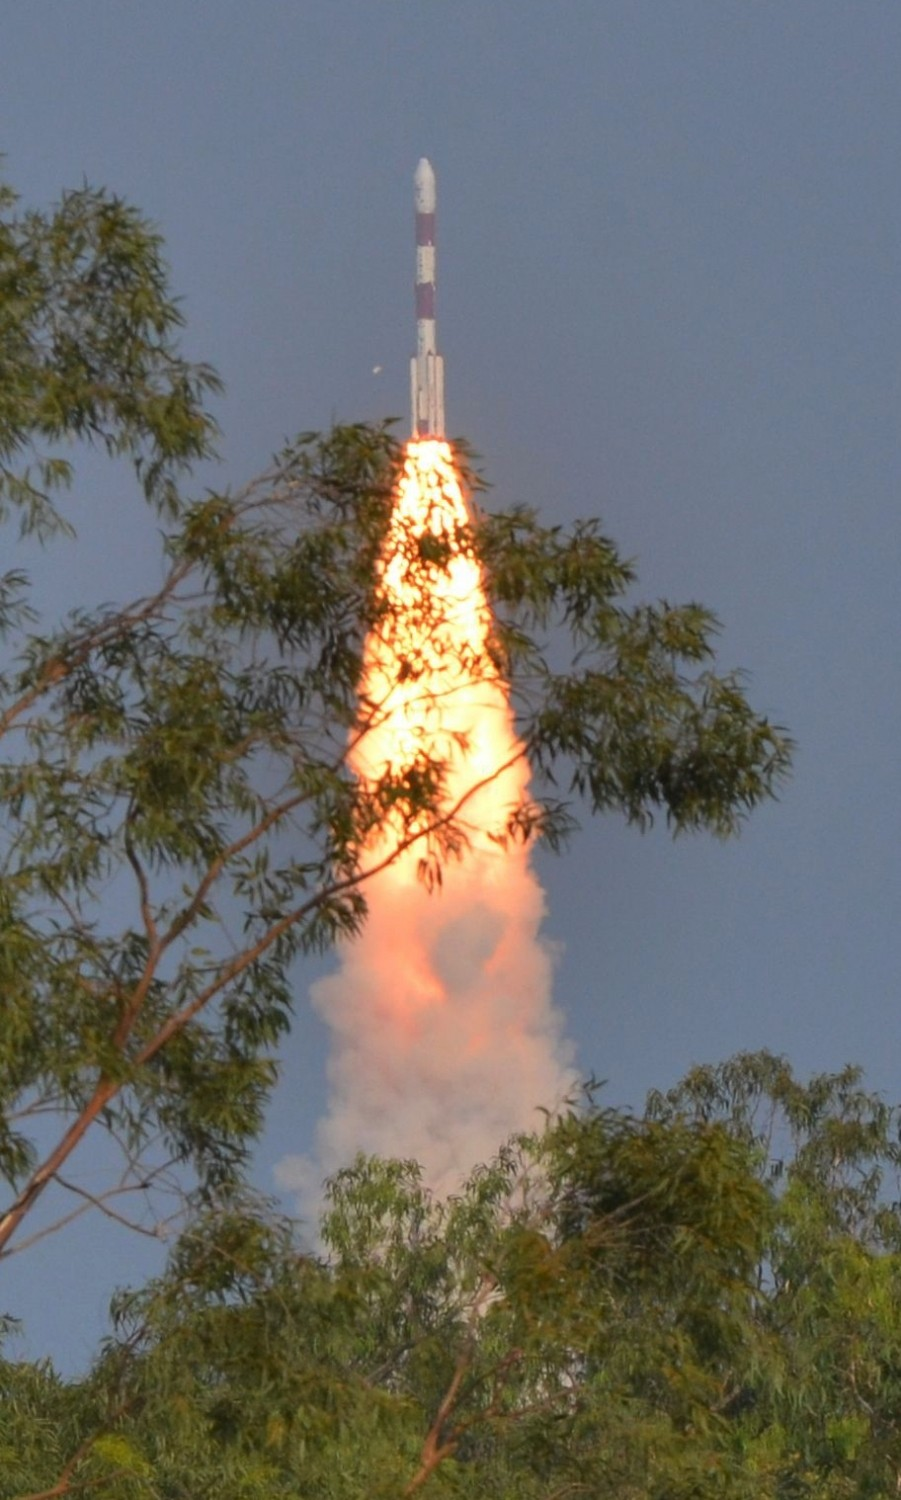 ISRO,IRNSS-1F,IRNSS-1F satellite,PSLV-C32,PSLV-C32 rocket,Sriharikota,sixth navigation satellite,ISRO launches IRNSS-1F